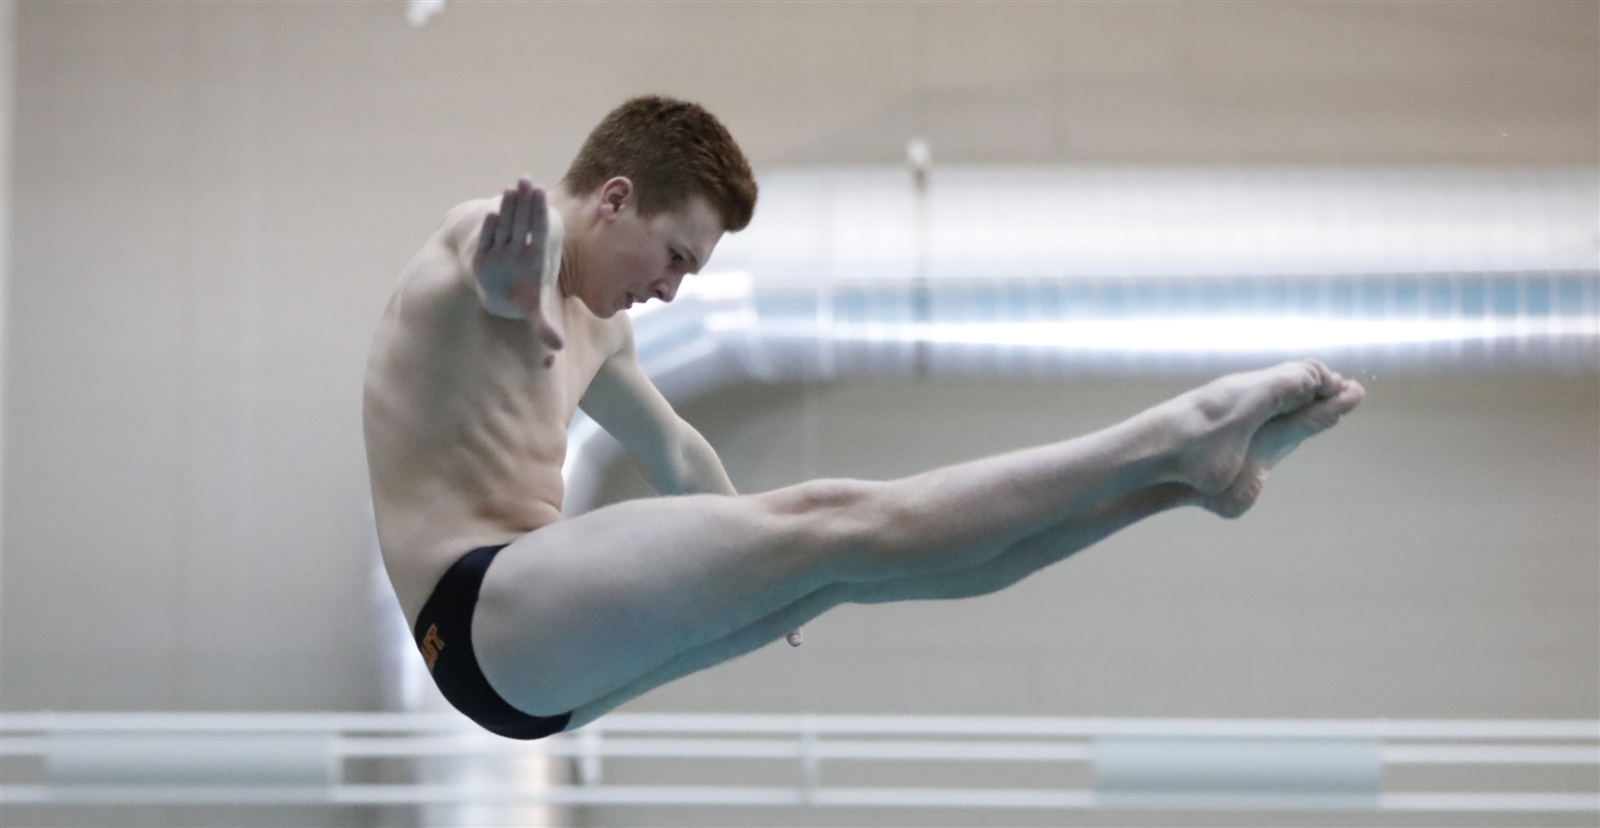 Tim Finley from Williamsville East high school, dives during the Section VI Class Meet Diving championships at Maryvale High School on Friday, Feb. 3, 2017. (Harry Scull Jr./Buffalo News)